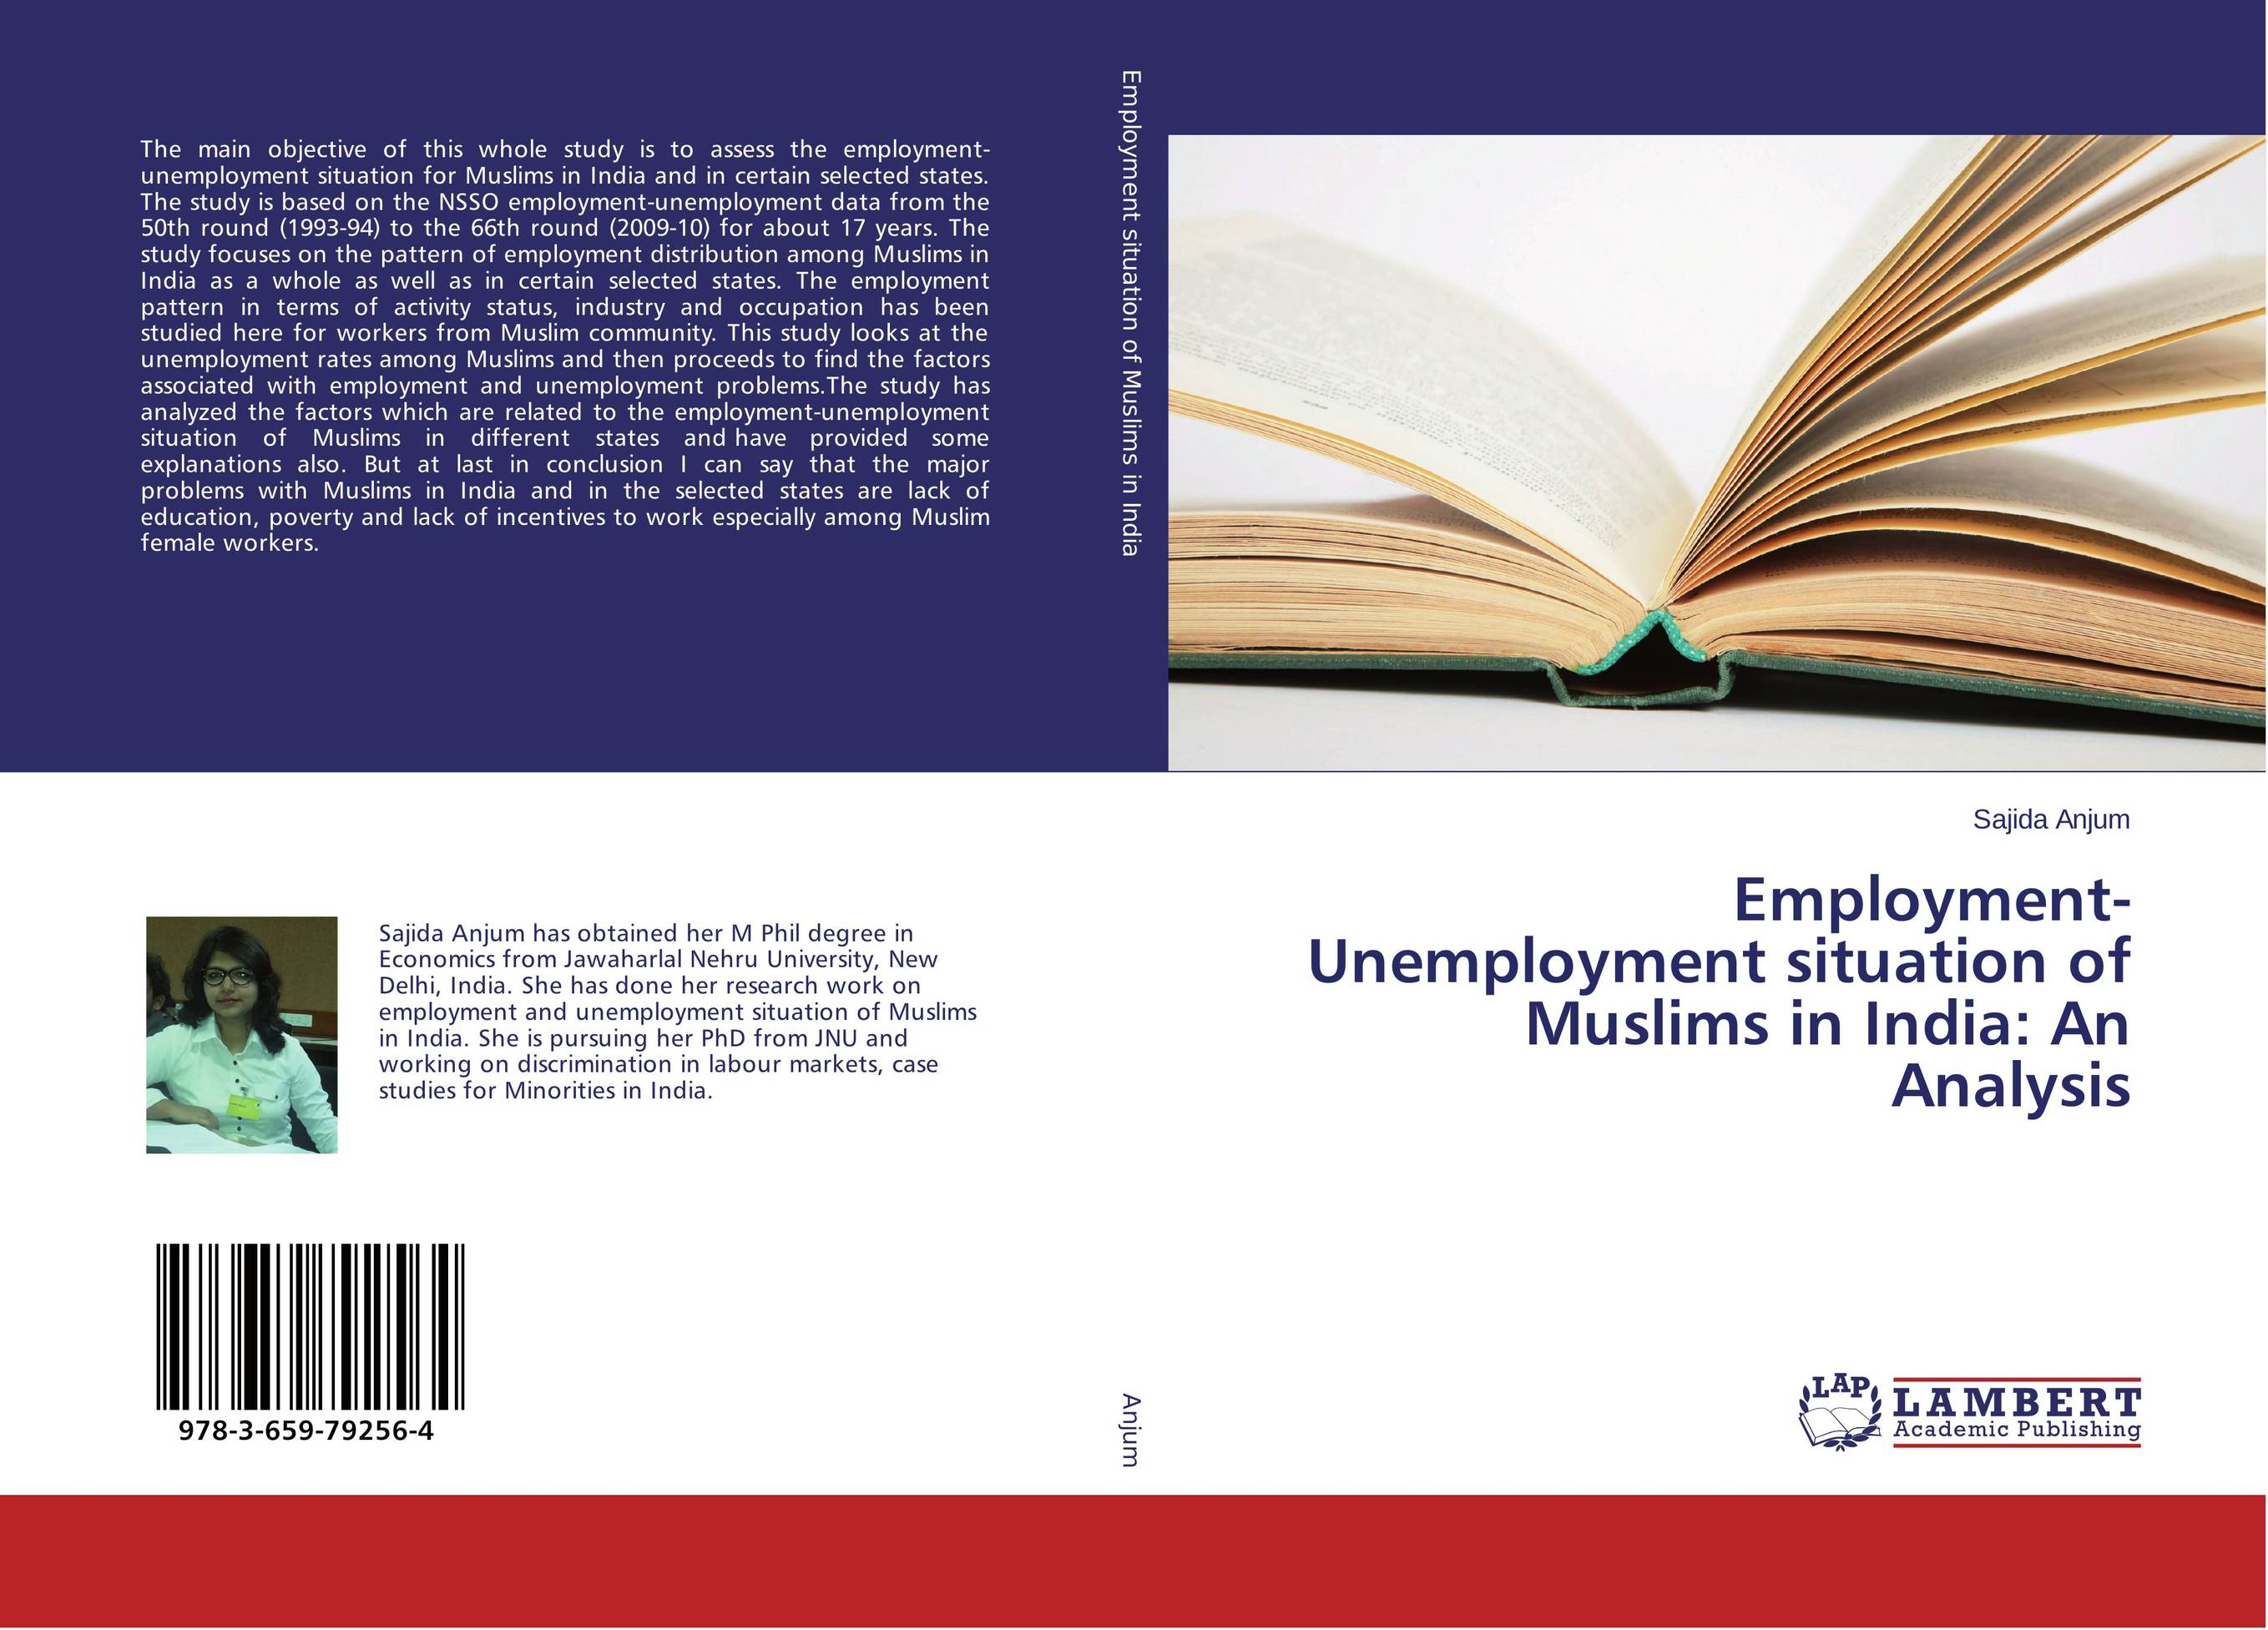 Employment-Unemployment situation of Muslims in India: An Analysis muslims in globalized india 1991 2007 an analysis